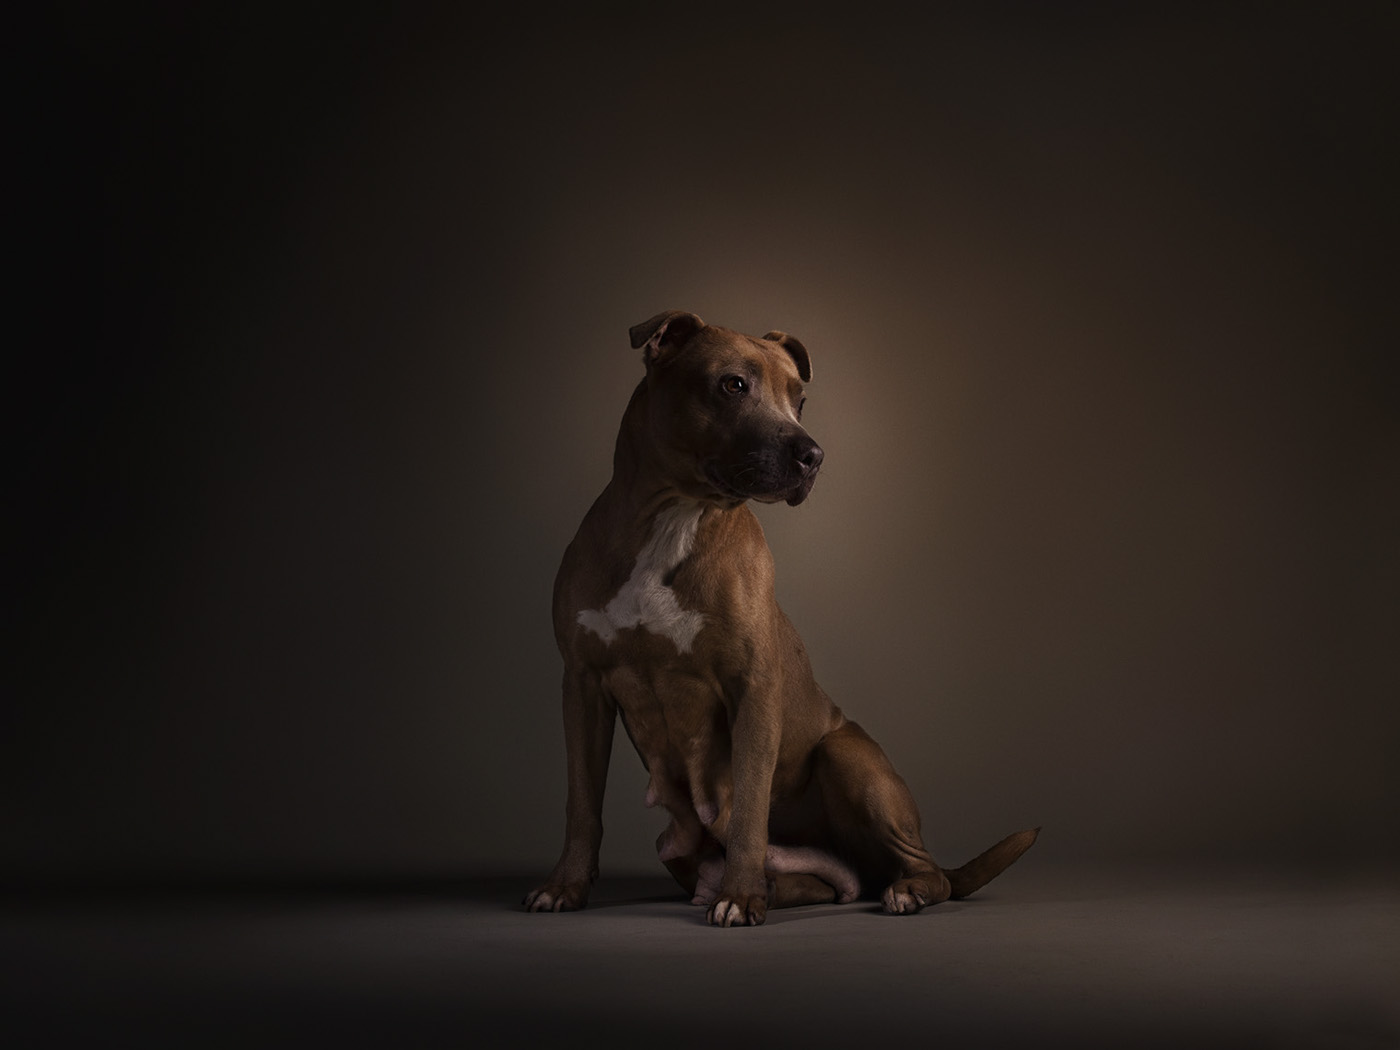 battersea dogs and,cats home,Renascence,rembrandt,portraits,dogs,animals,studio